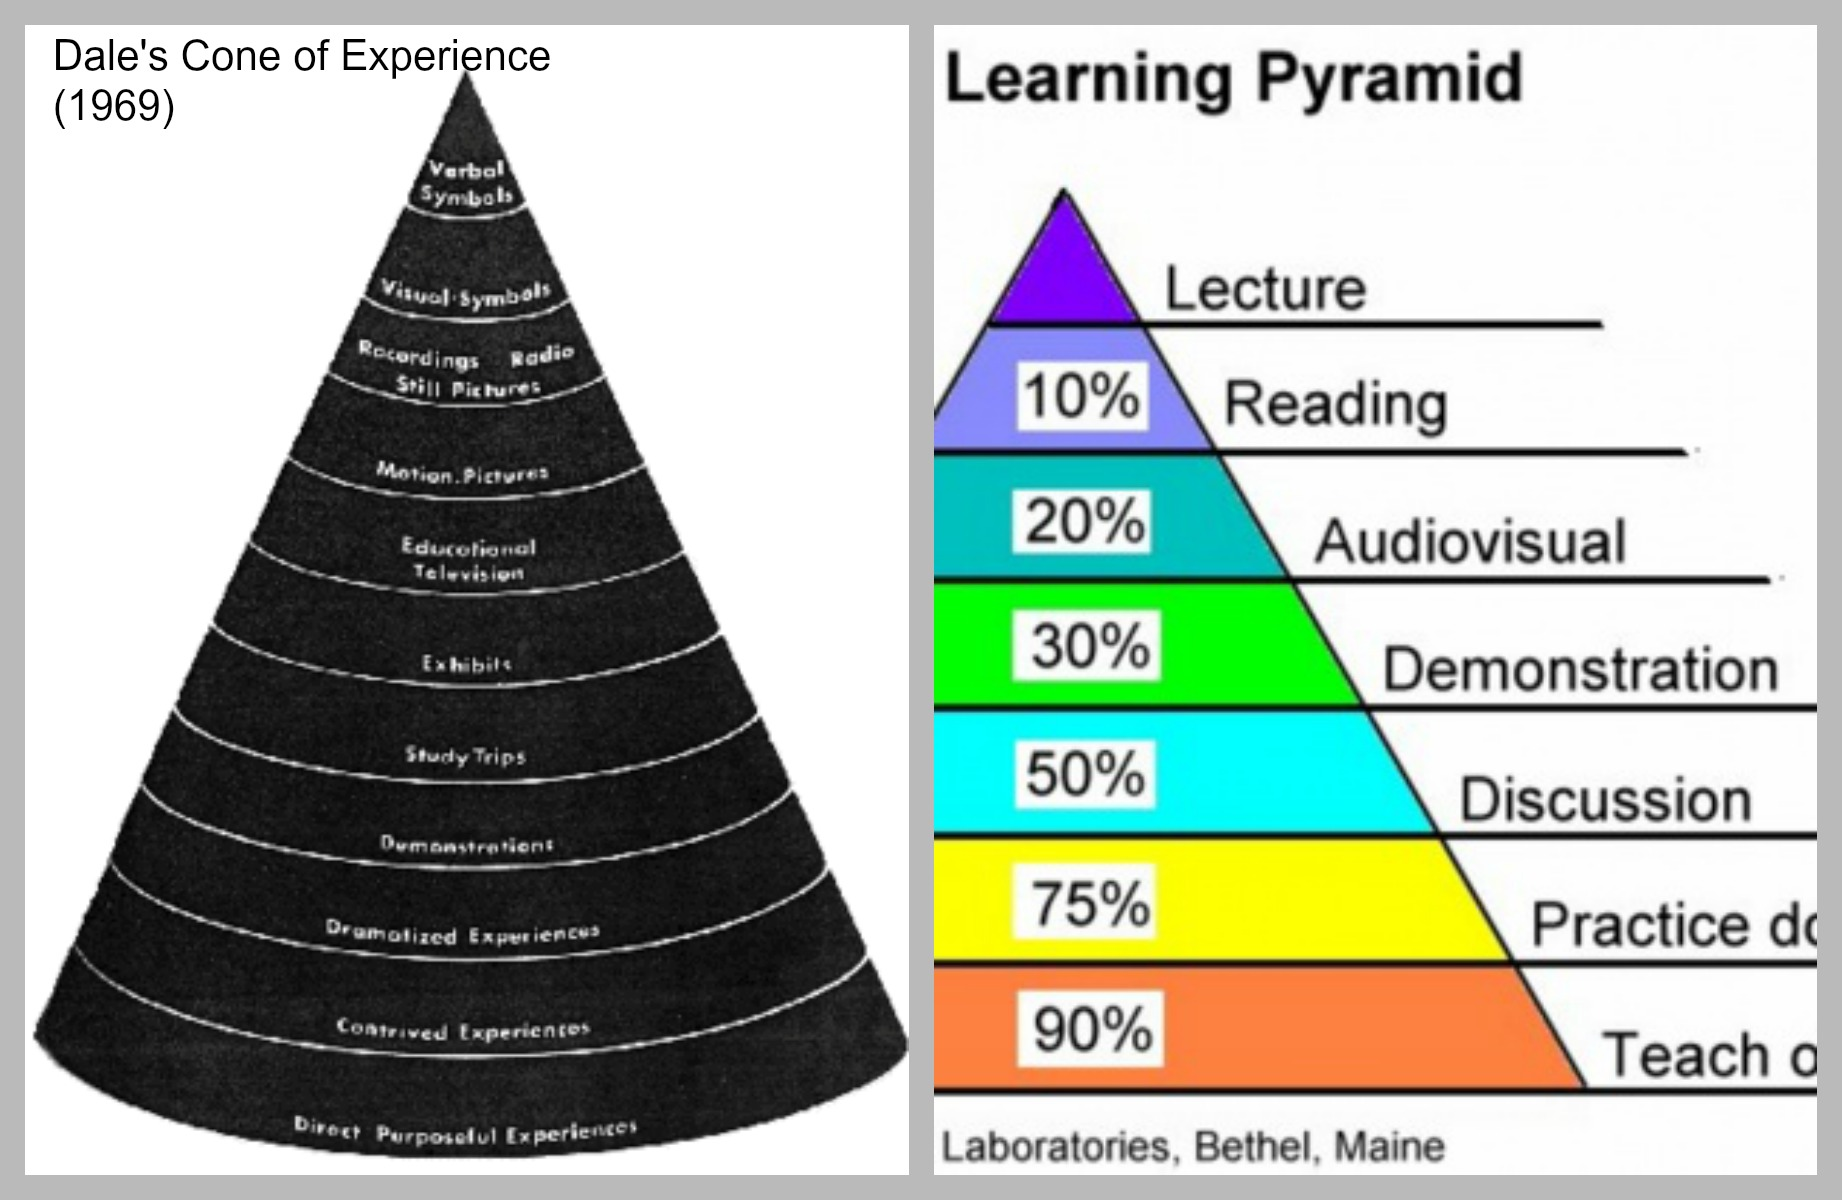 Myths in Education, or How Bad Teaching Is Encouraged